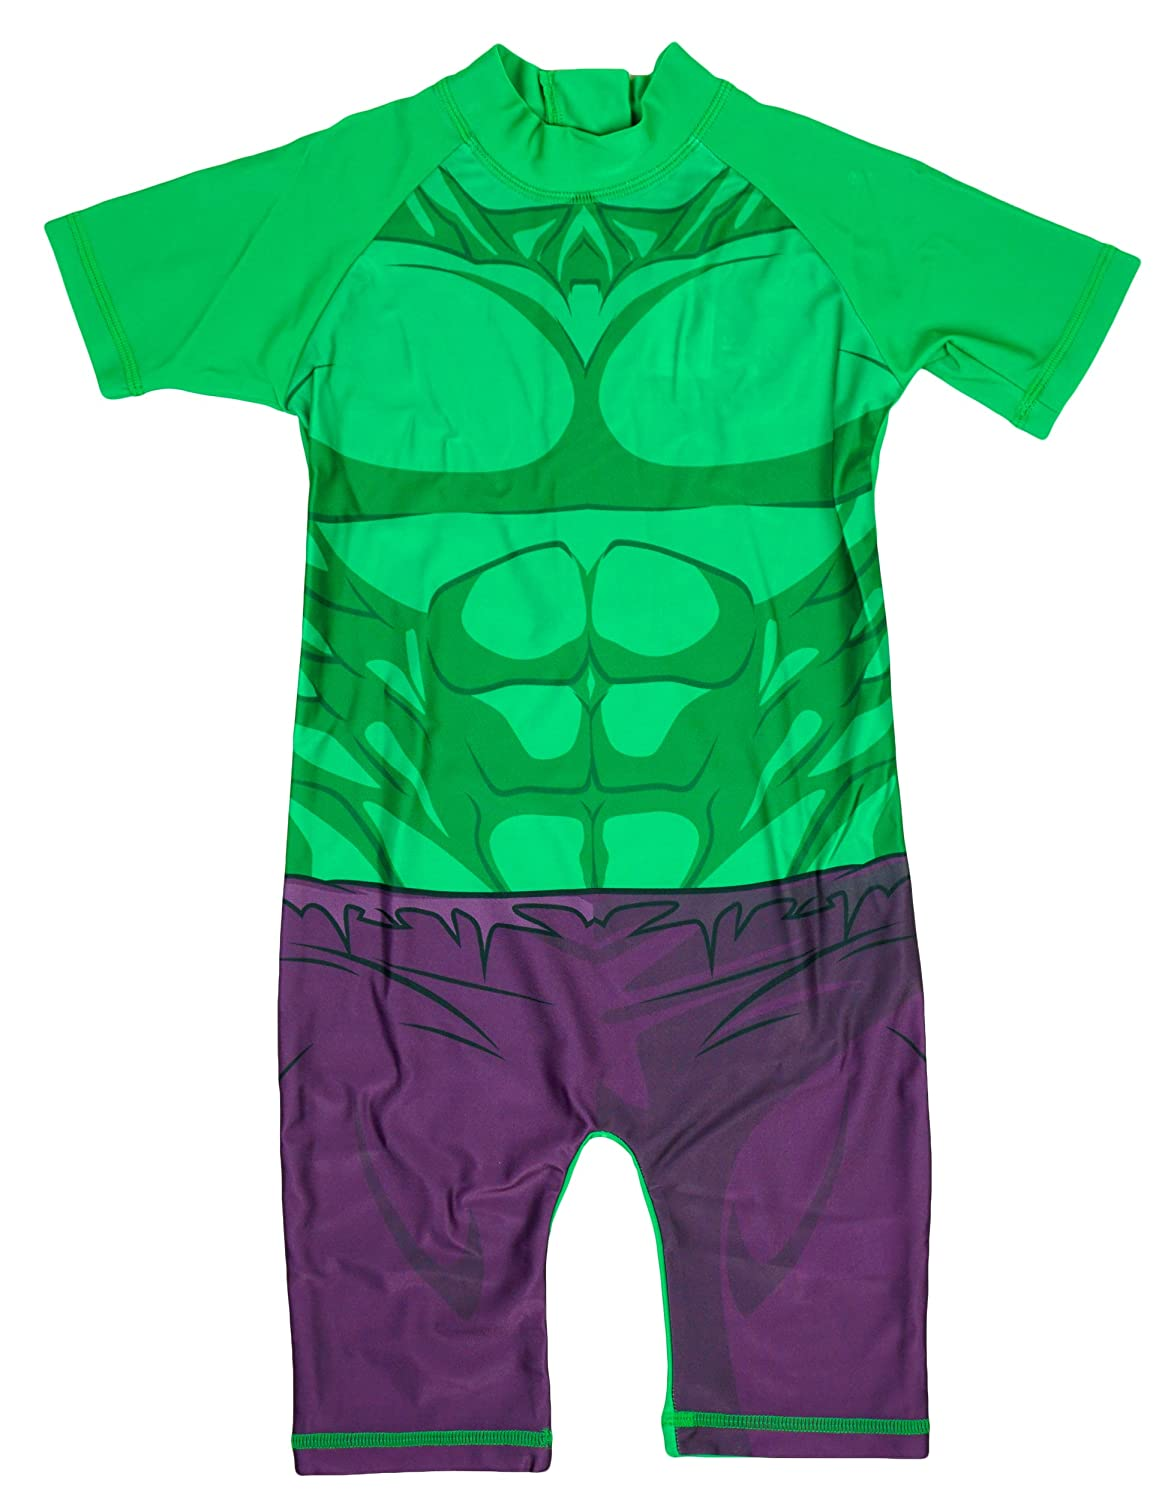 Incredible Hulk Boys All in One Sunsafe Surf Swimsuit Costume Sizes from 1.5 to 5 Years Amazon.co.uk Clothing  sc 1 st  Amazon UK & Incredible Hulk Boys All in One Sunsafe Surf Swimsuit Costume Sizes ...